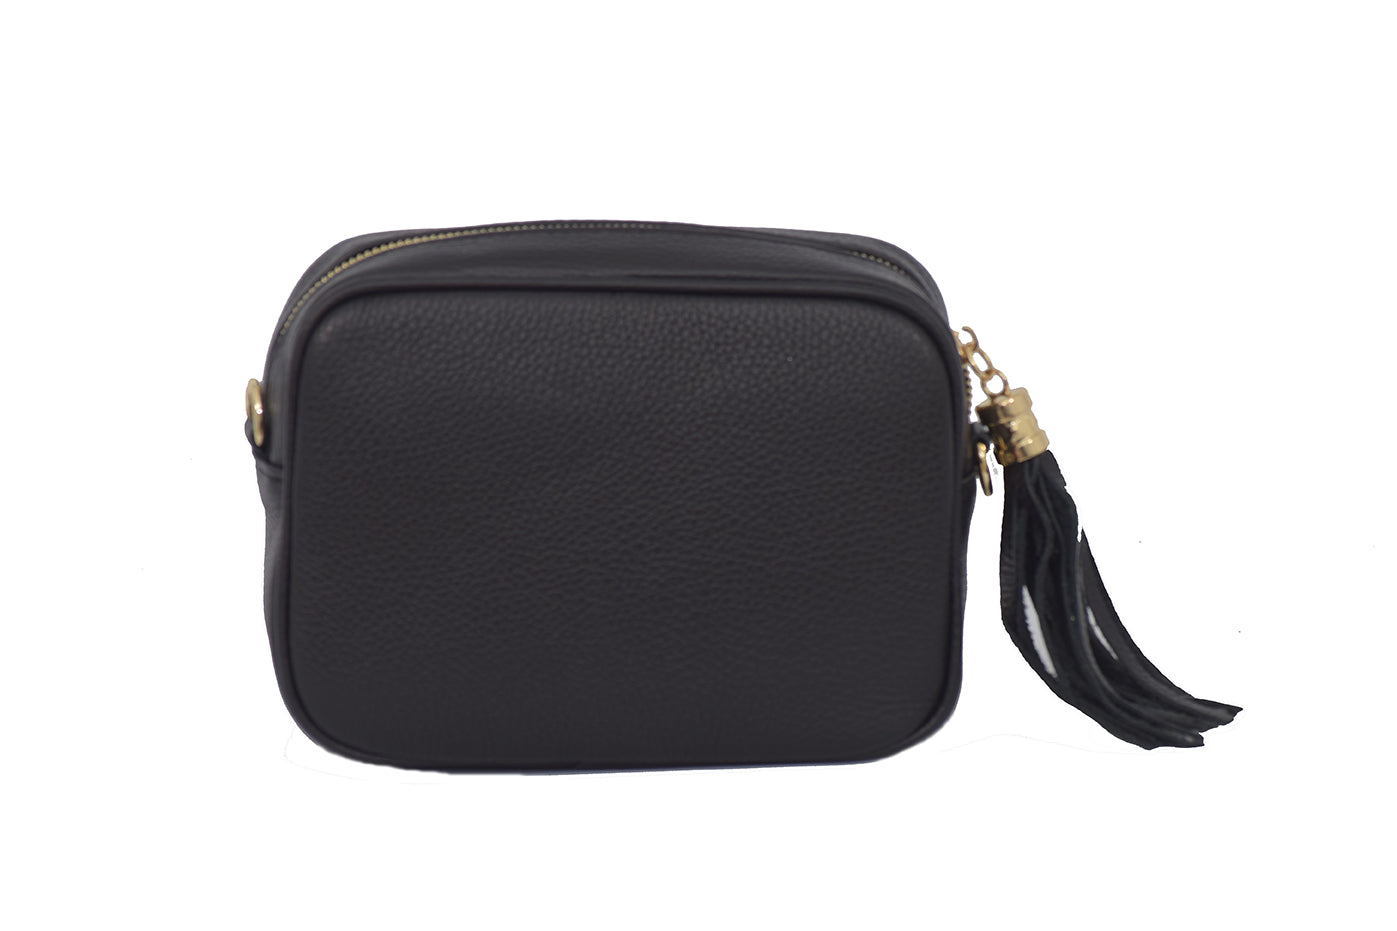 Navy real soft leather compact cross body bag with leather tassel attached to zipper closure